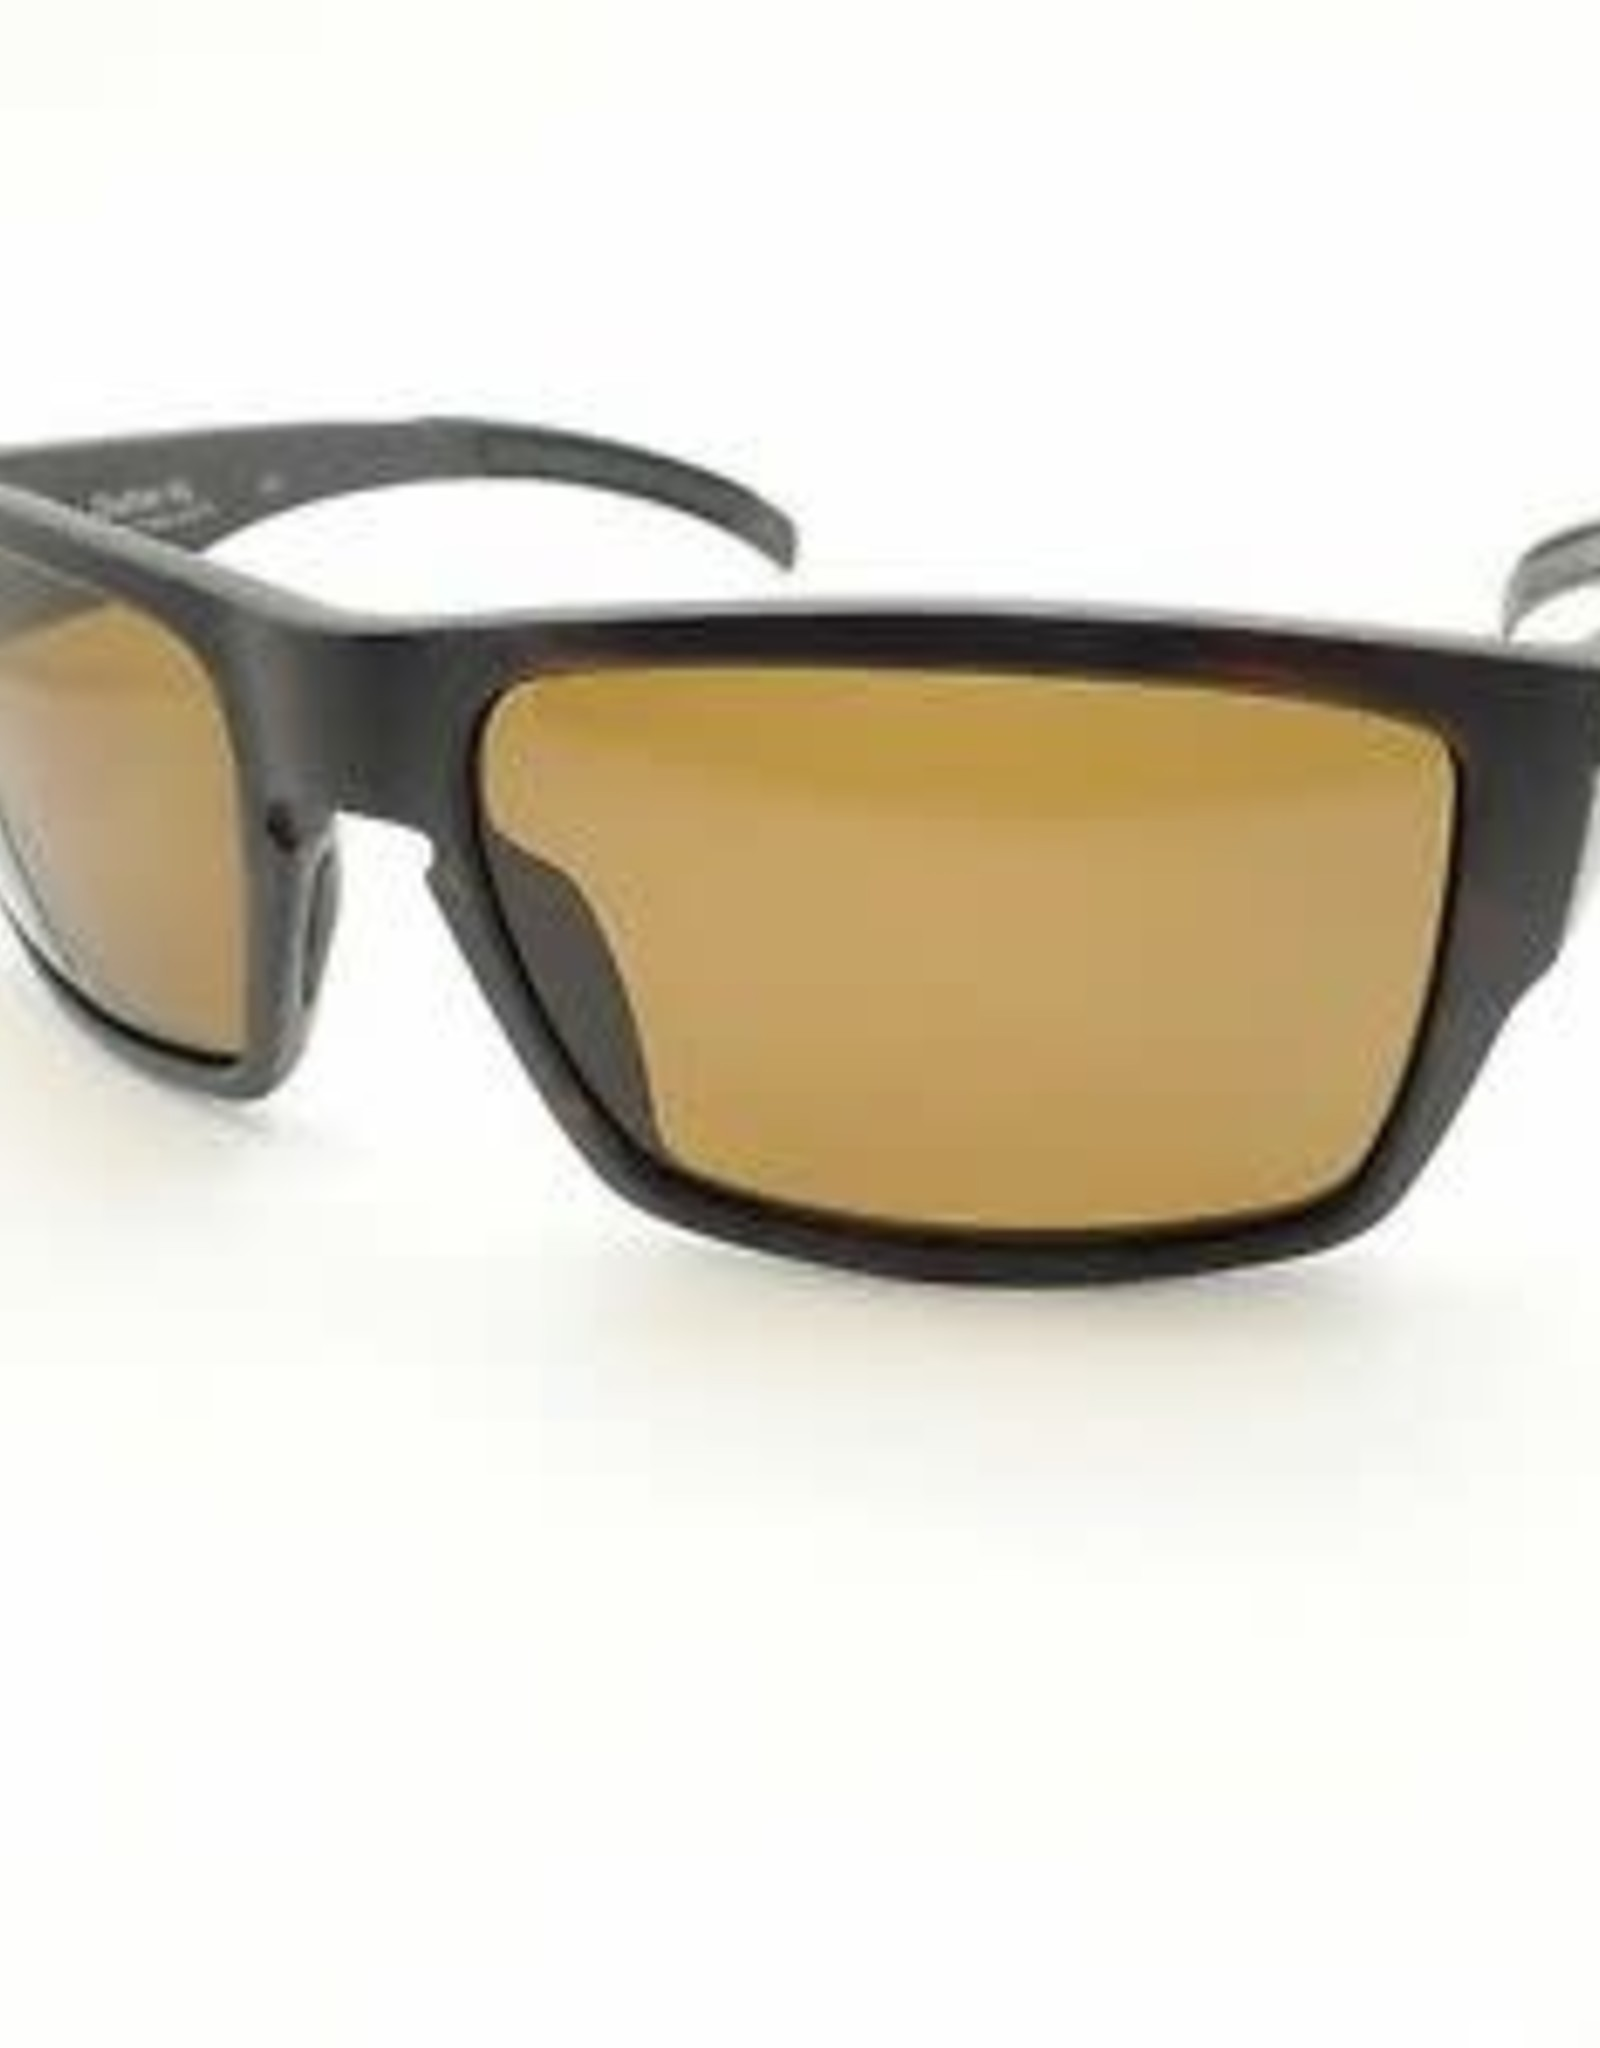 Smith Optics Smith - OUTLIER 2 XL - Matte Tort w/ Polar Brown